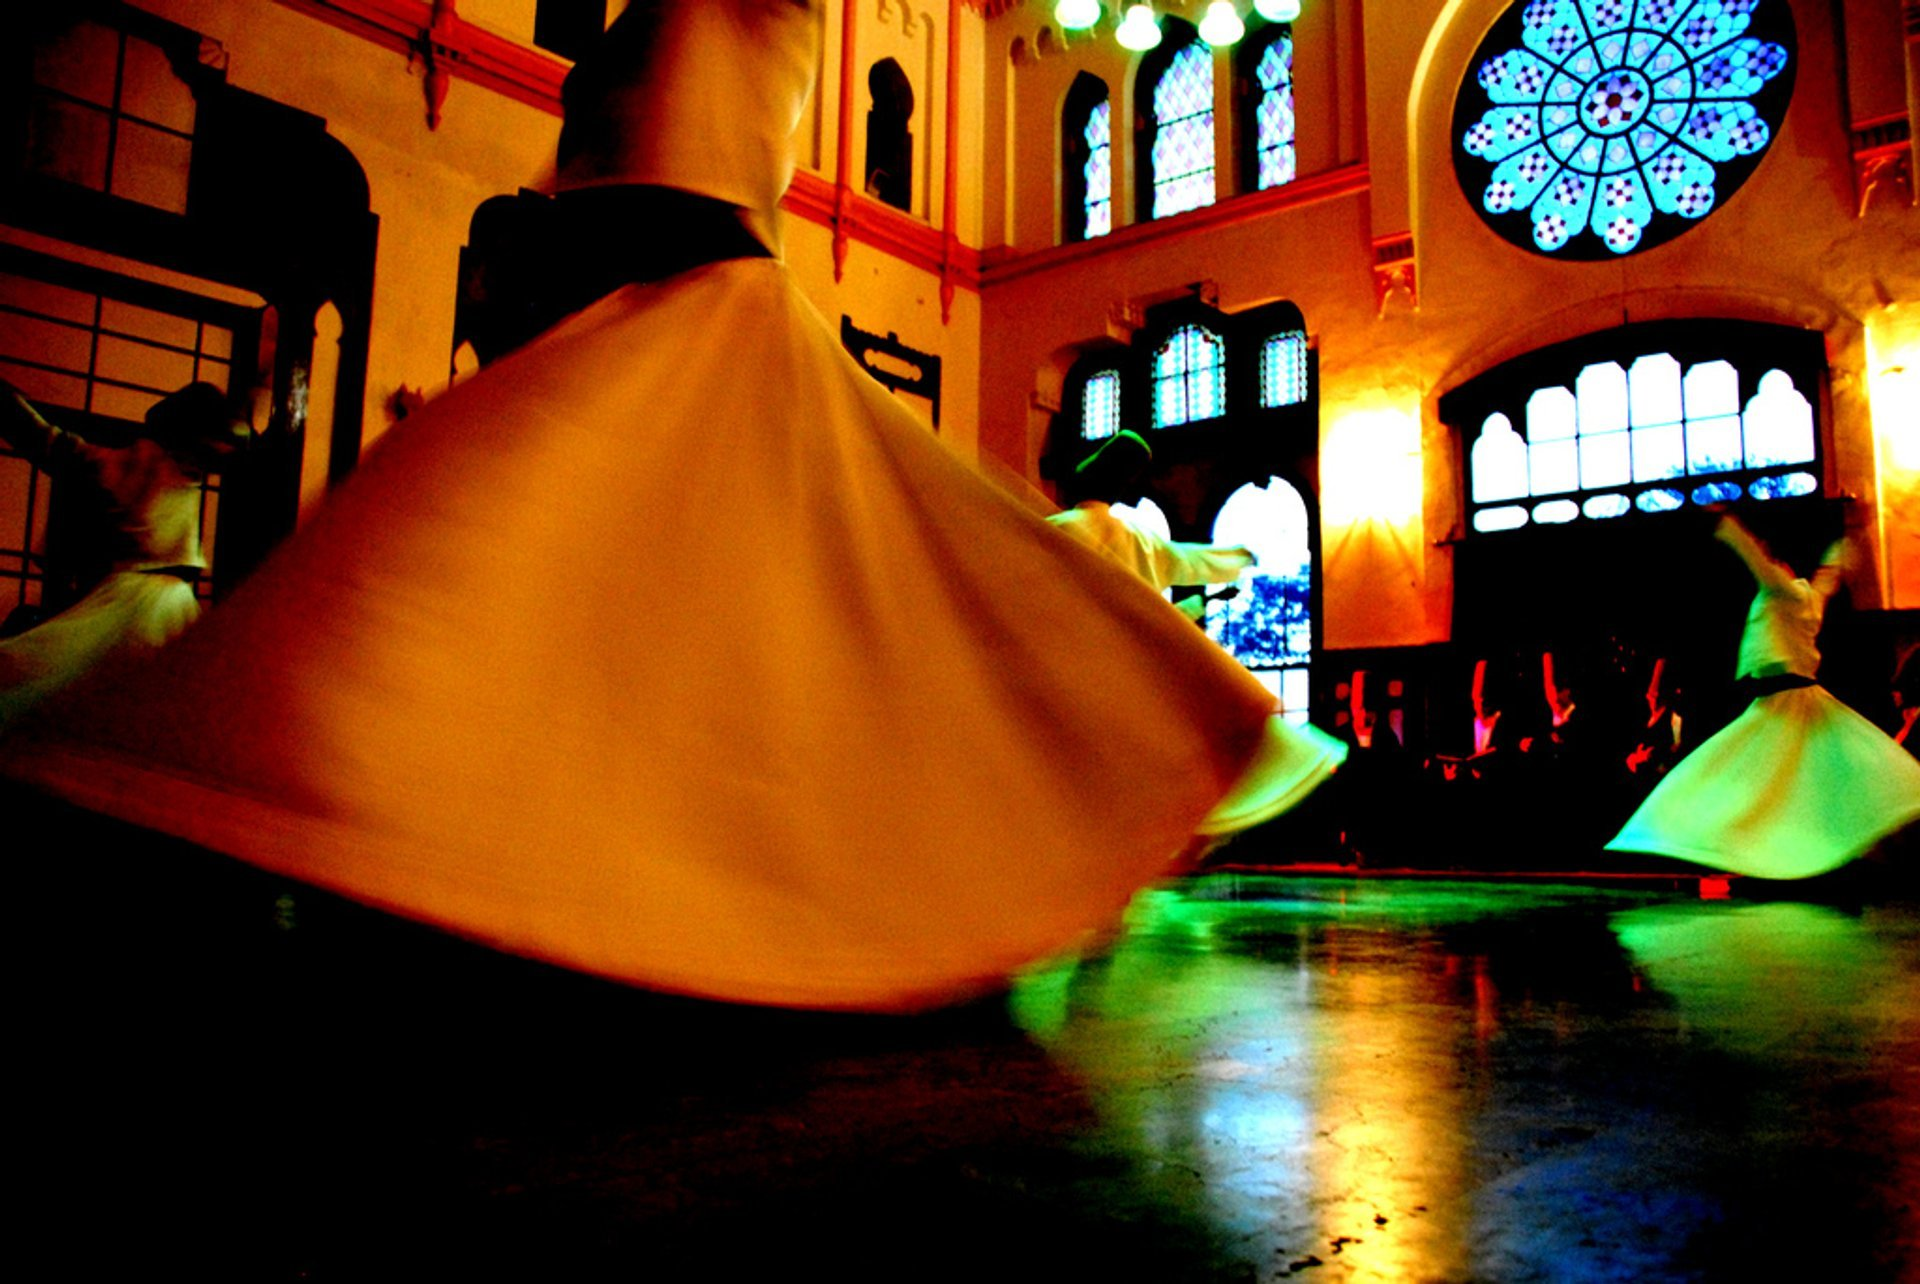 Whirling Dervish Sema Ceremony in Istanbul 2019 - Best Time